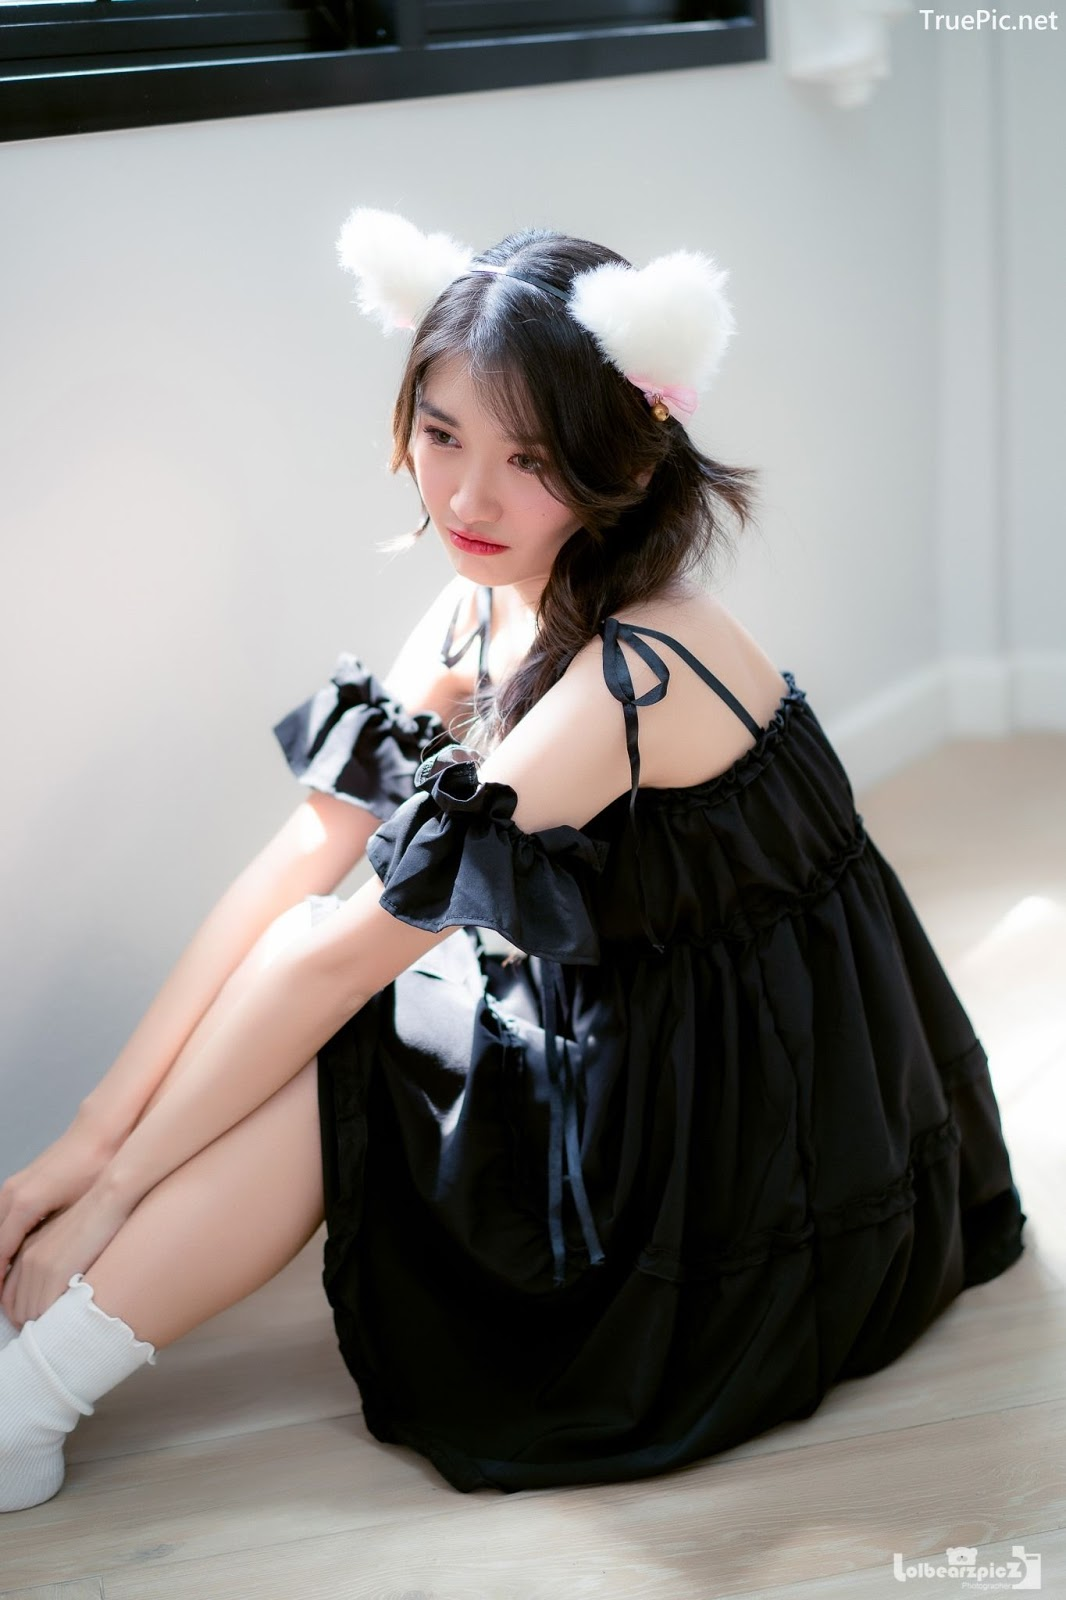 Image Thailand Model - Yatawee Limsiripothong - Busy Day of The Black Cat - TruePic.net - Picture-2